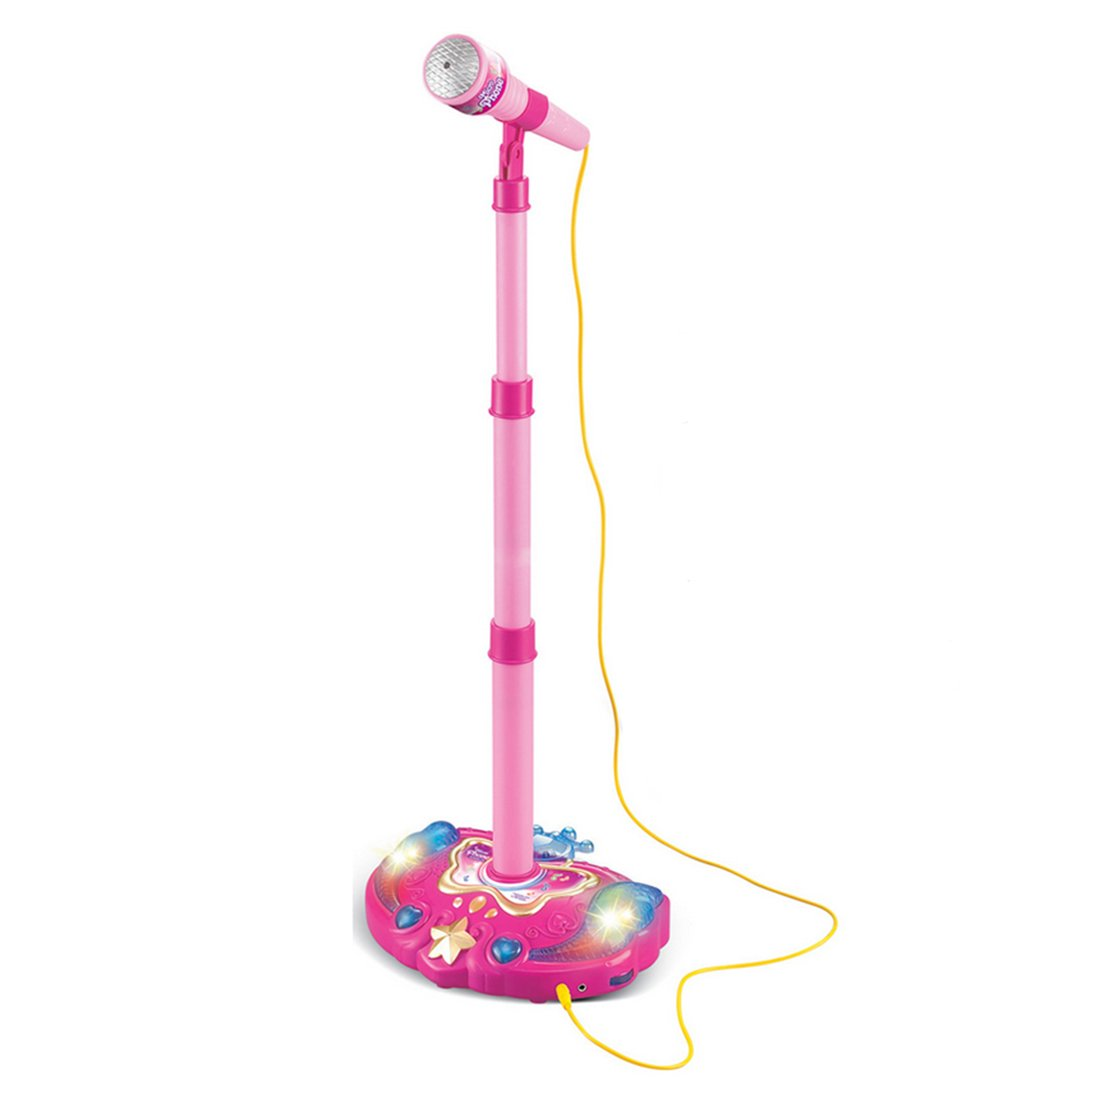 PeleusTech® Kids Karaoke Machine Adjustable Stand Microphone Music Toy with Light Effect - Pink by PeleusTech® (Image #1)